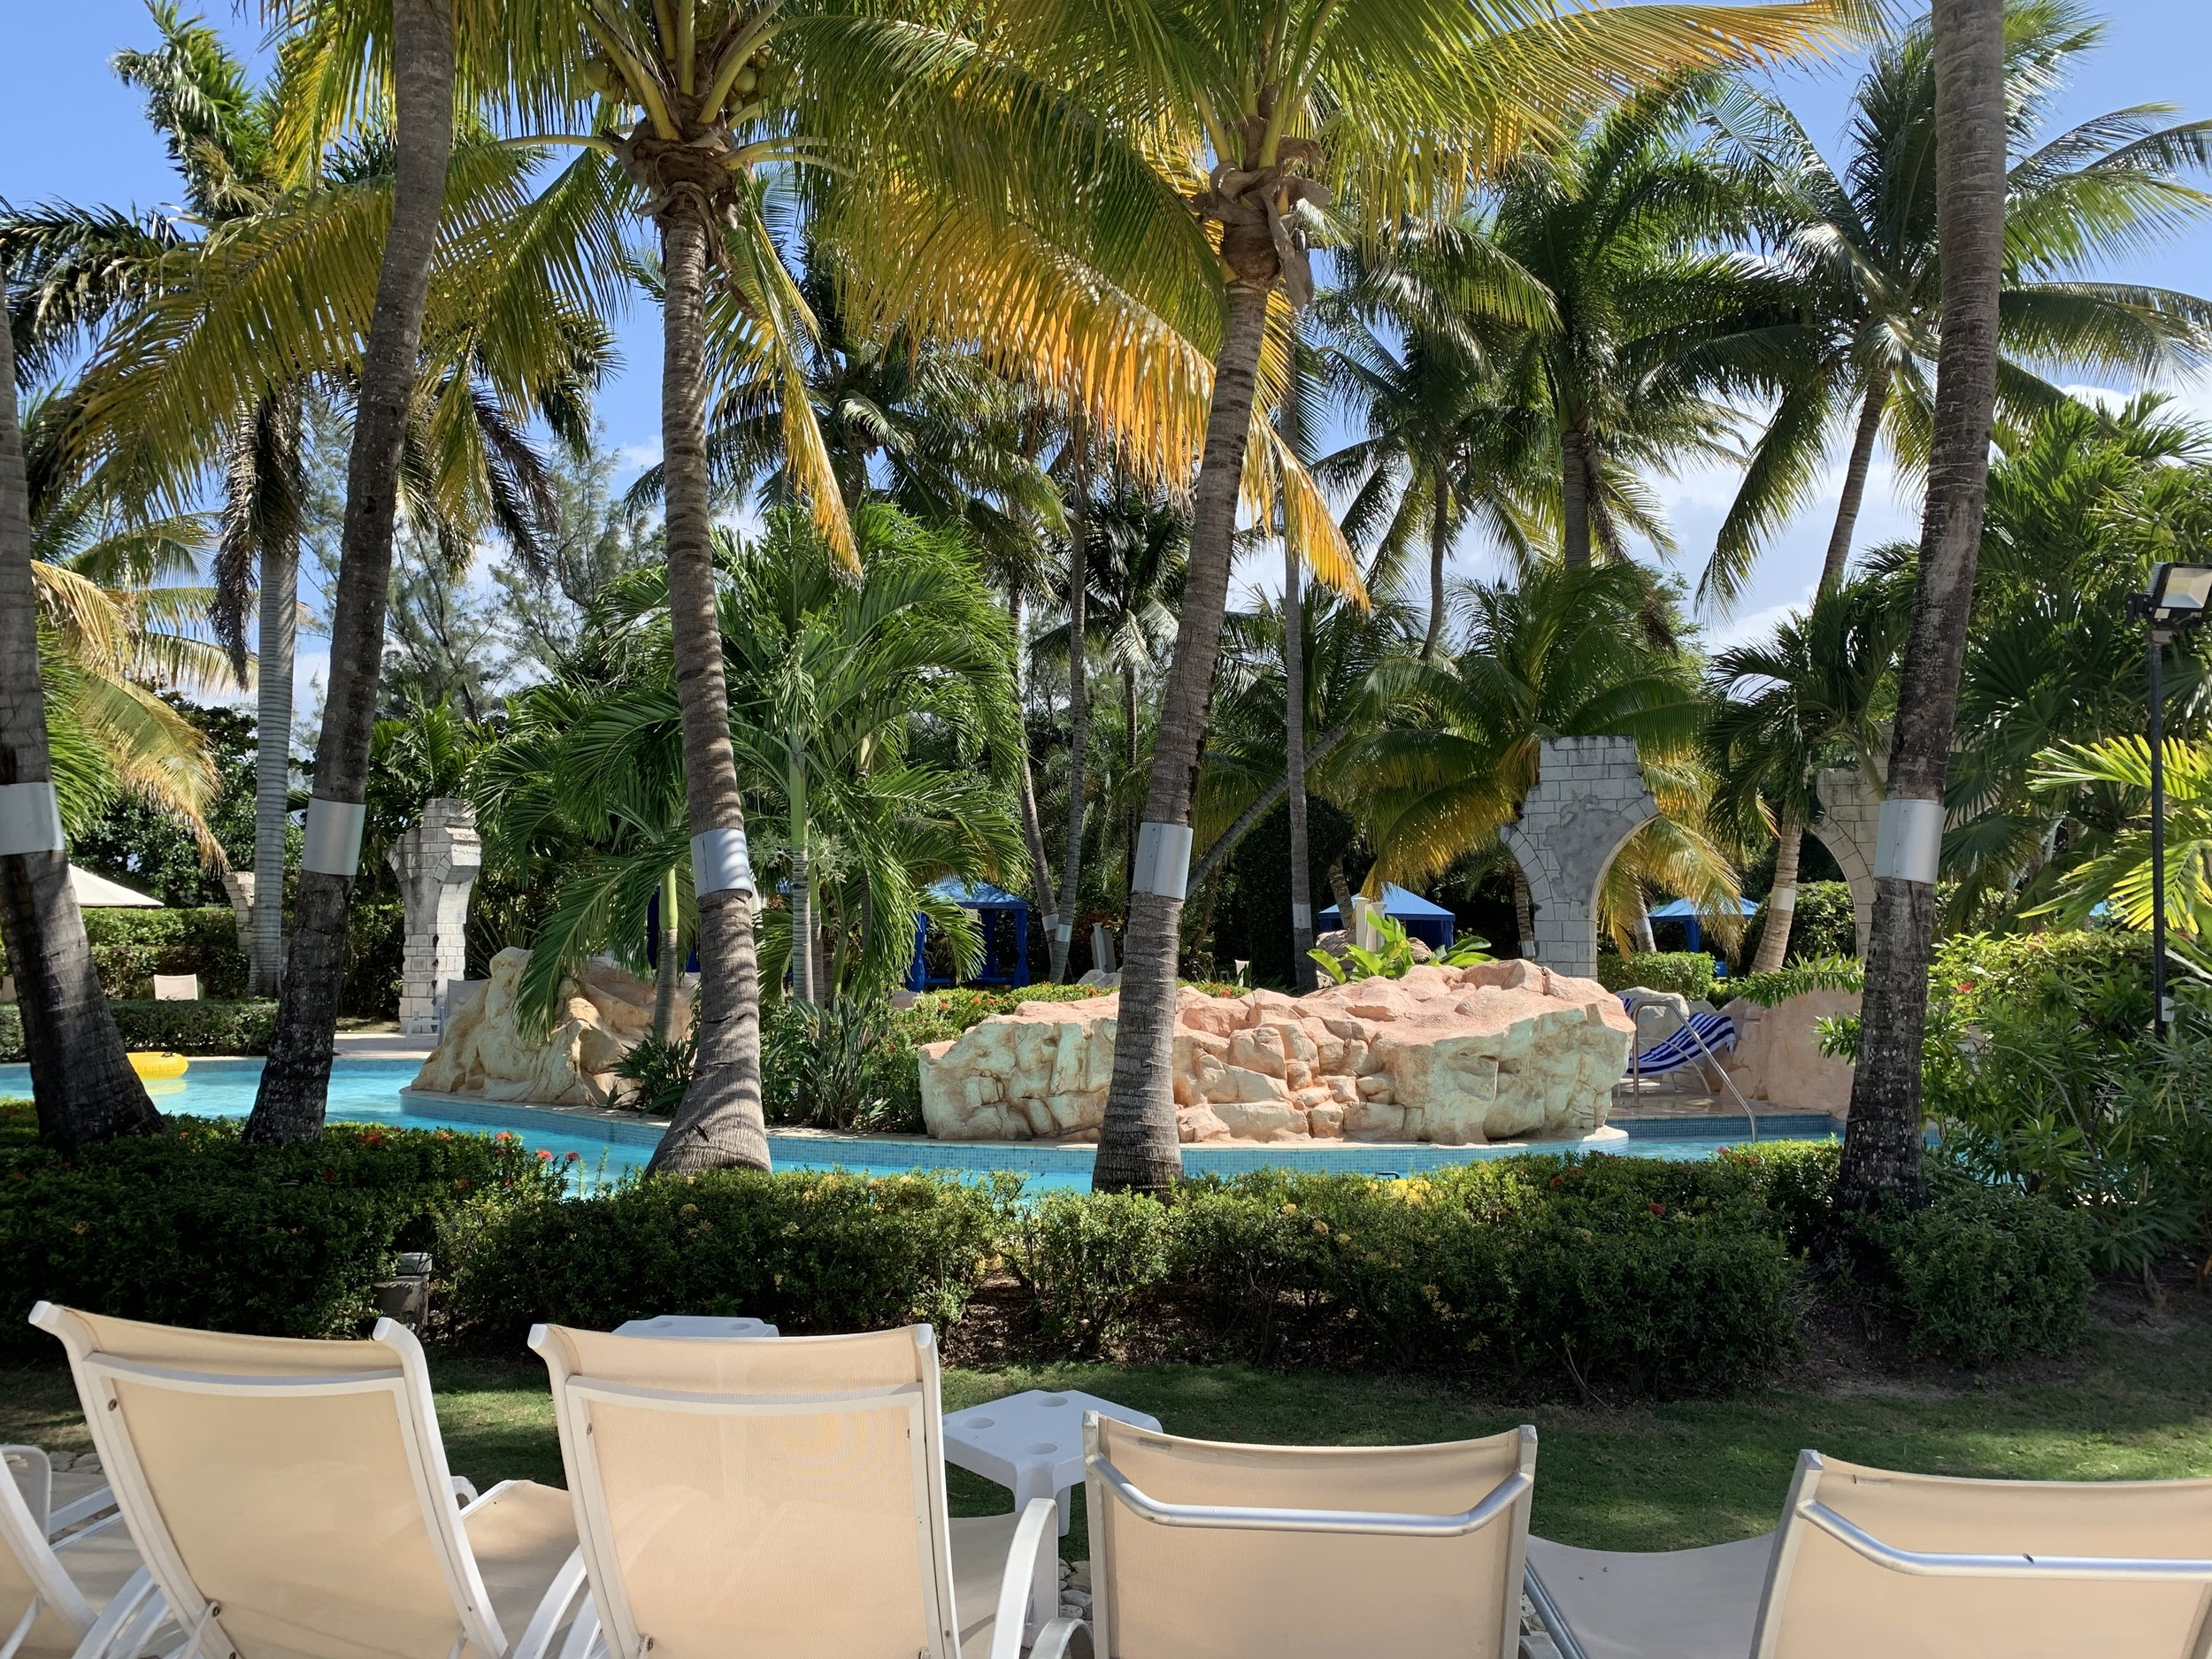 View of the lazy river from the loungers